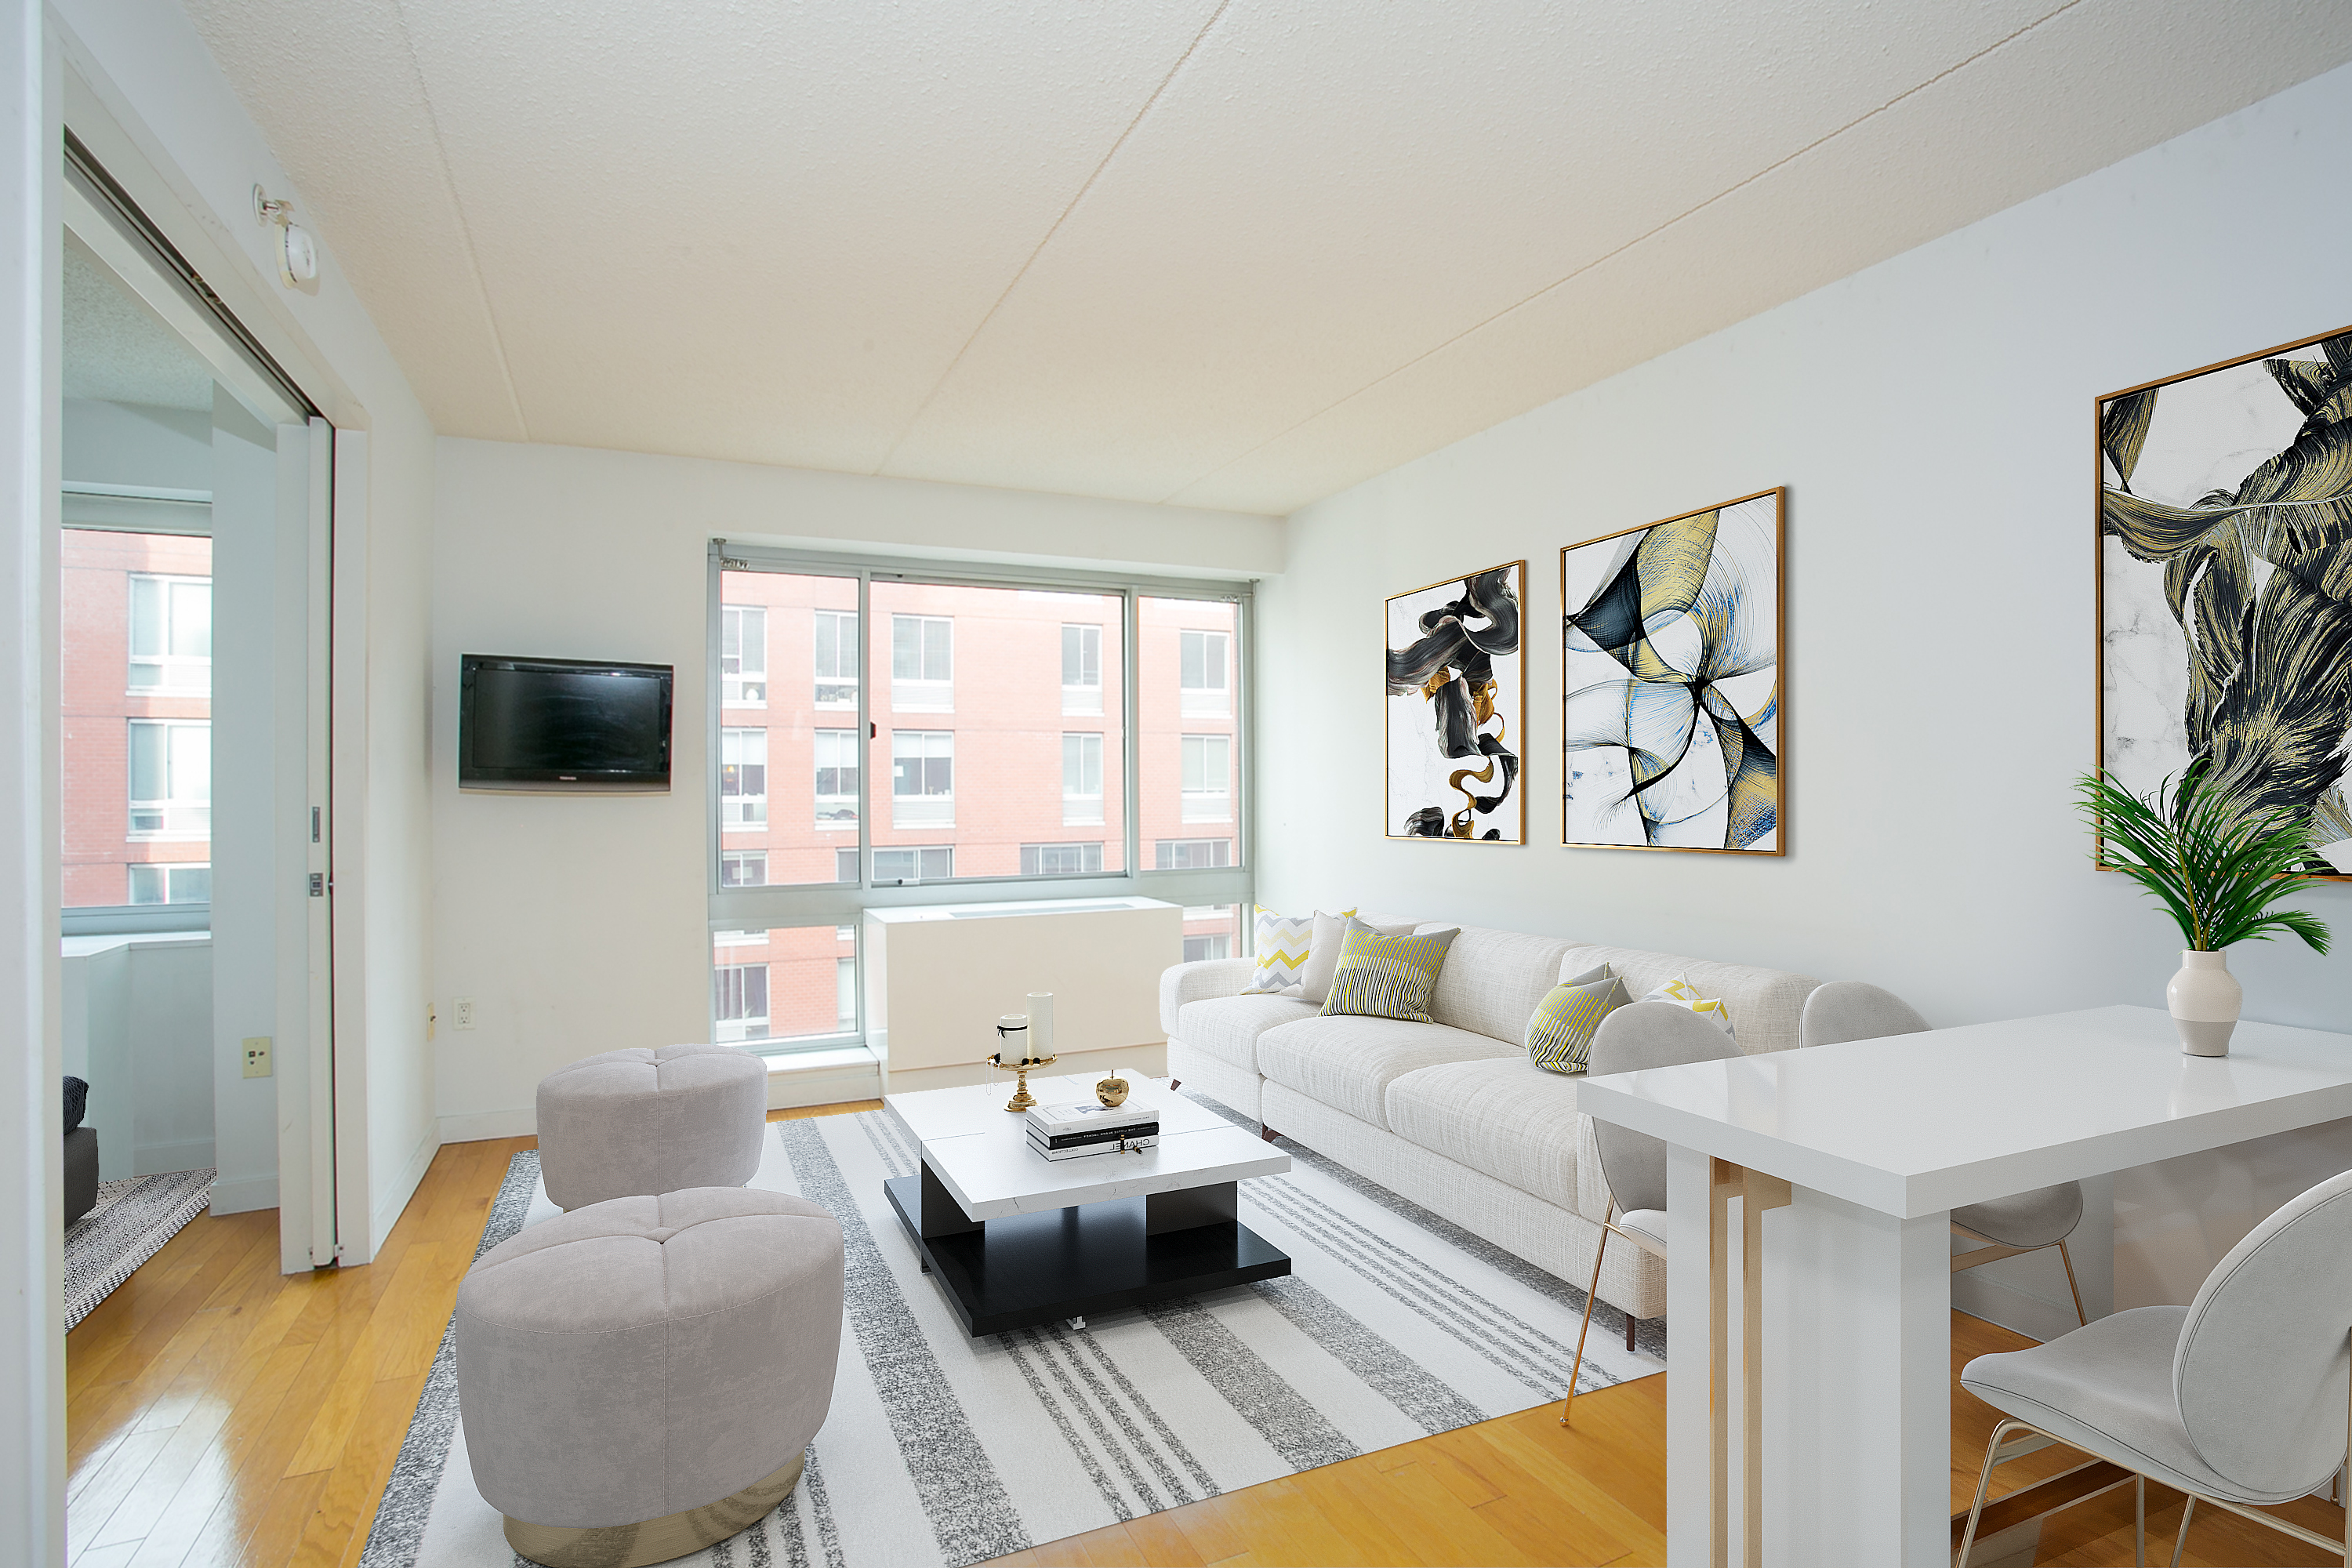 One-bedroom apartment in the heart of the West Chelsea Art District!  This is one of the neighborhood's most desirable and affordable Condo buildings. The apartment features a beautiful open kitchen with breakfast bar that opens to a large living room. The kitchen has all stainless steel appliances including a dishwasher, granite counter tops, and maple cabinetry. Beautiful large windows with Northern skyline and courtyard views making the apartment bright and very quiet.The building offers wonderful amenities including a full-time doorman, concierge service, 2,000 SQFT fitness center, massive 12,000 SQFT sundeck with fountains and reflecting pond, bike room, and parking.Located a short distance from amazing Chelsea restaurants, art galleries, and shopping, as well the famous High Line Park,  Chelsea Market, Hudson River Park, and Chelsea Piers.